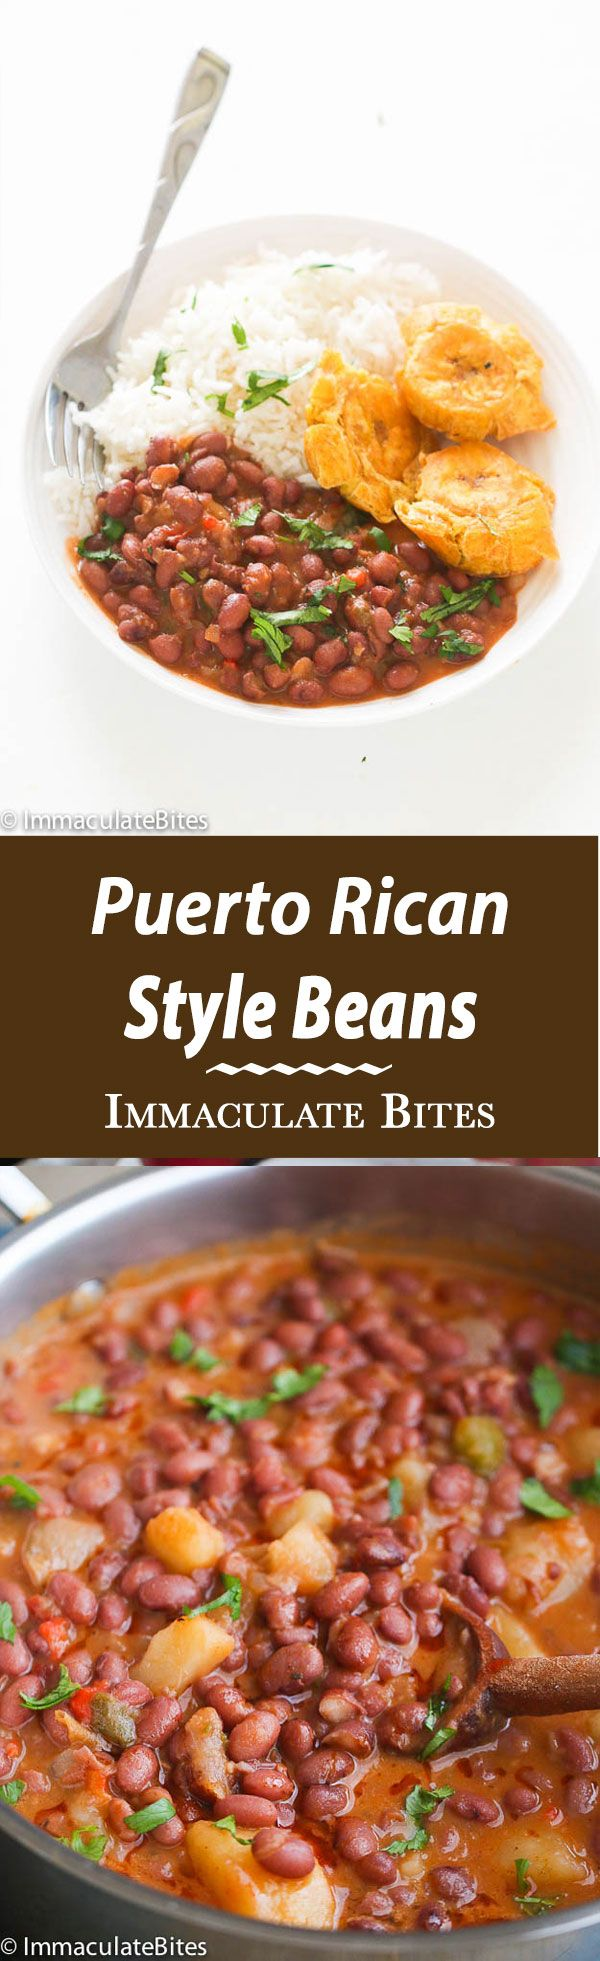 Puerto Rican Style beans – A hearty red beanssimmered in an aromaticsauce withbig bold flavors. Quick Easy  Vegan and Simply Delicious. I